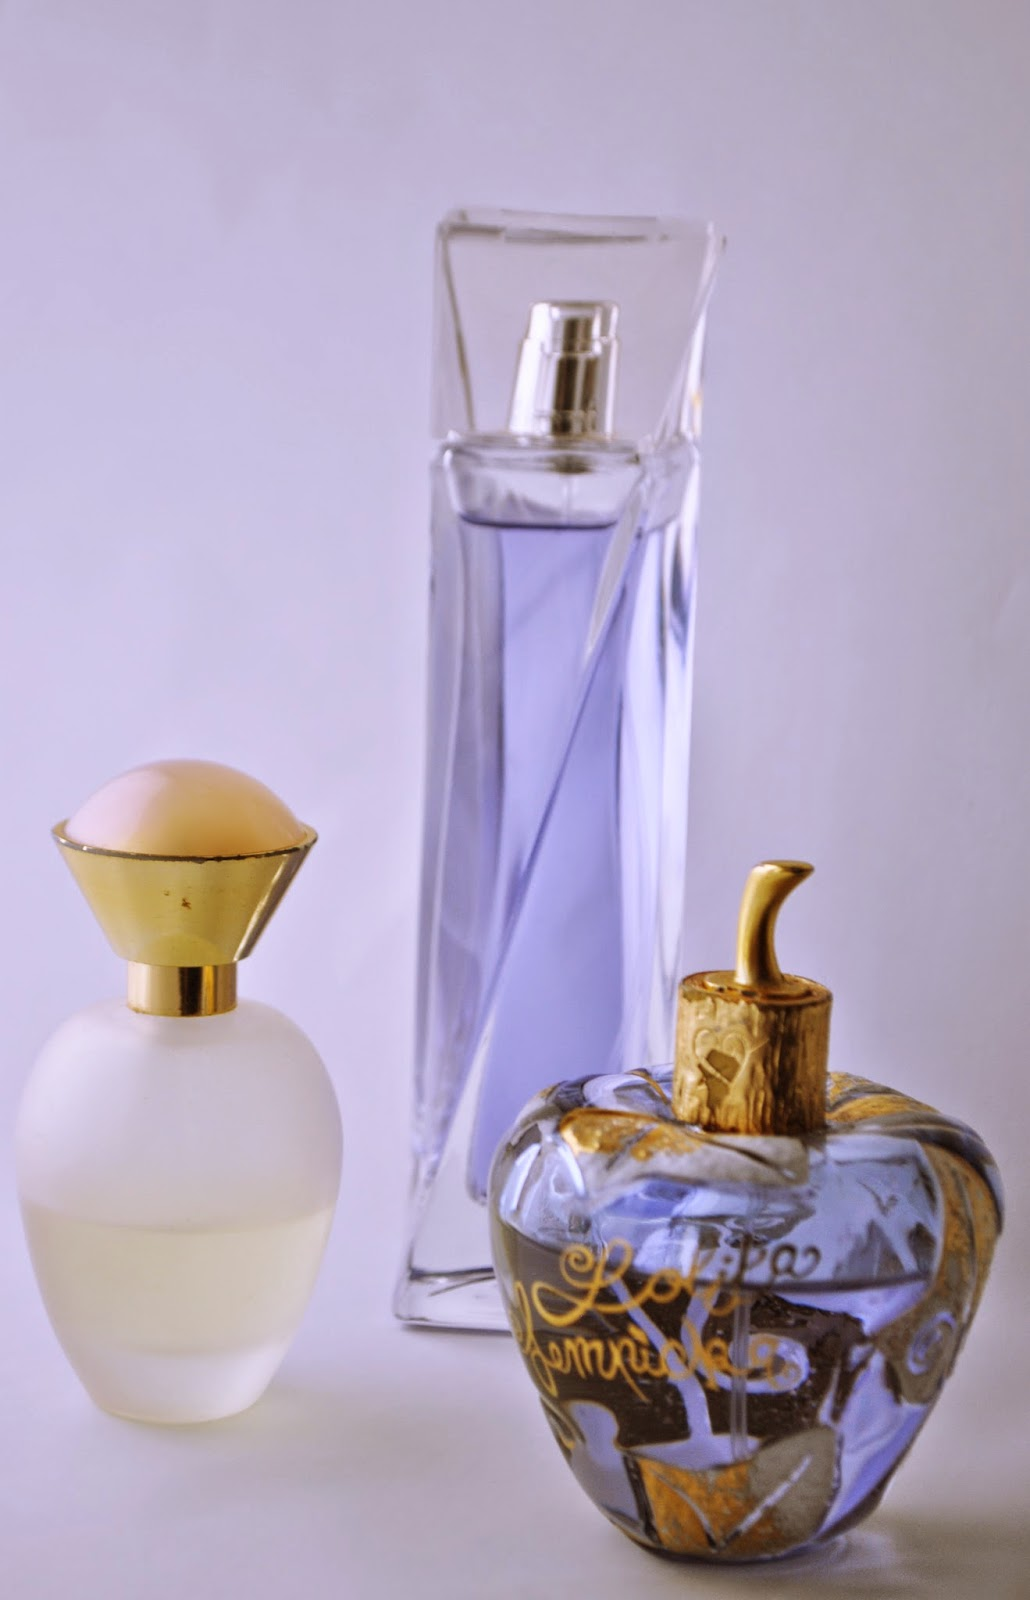 A picture of Lancome, Avon and Lolita Lempicka perfumes